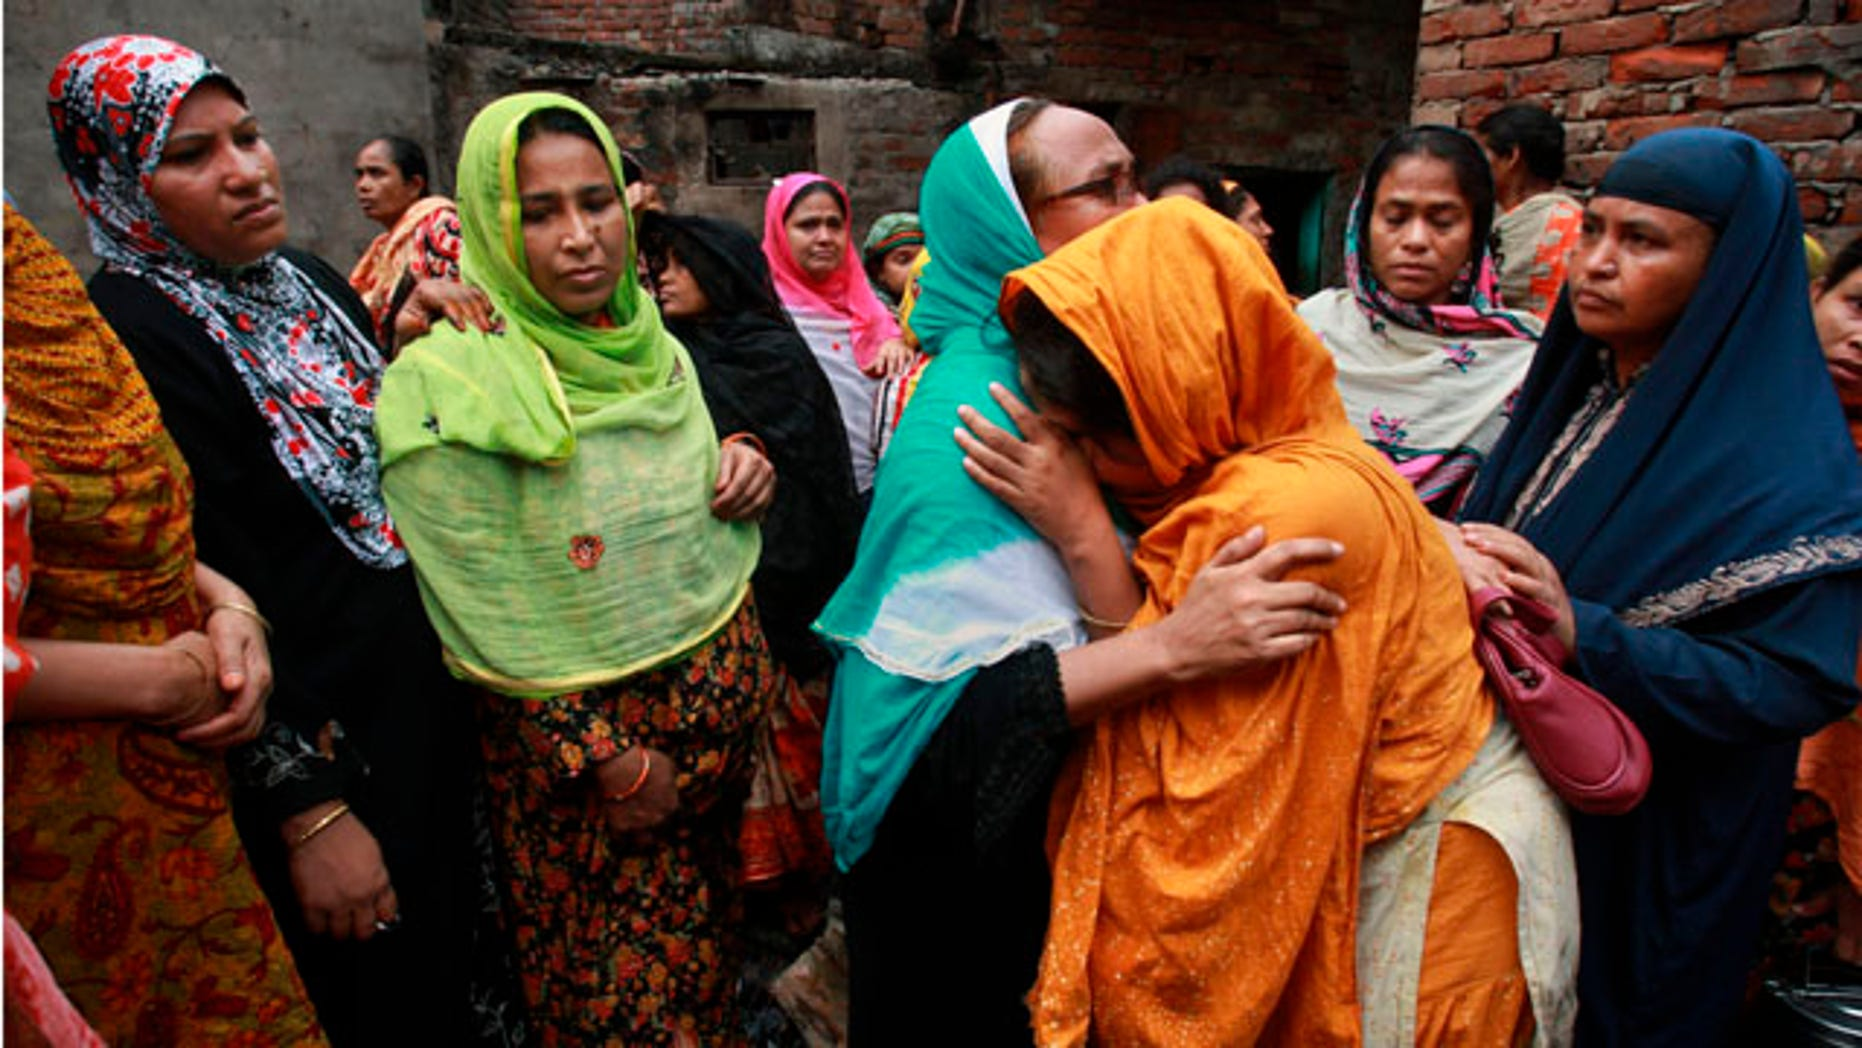 June 4: Relatives mourn the death of a victim of a fire in Dhaka, Bangladesh. The devastating fire raced through several apartment complexes in the Bangladeshi capital Thursday, killing and injuring scores of people. (AP)